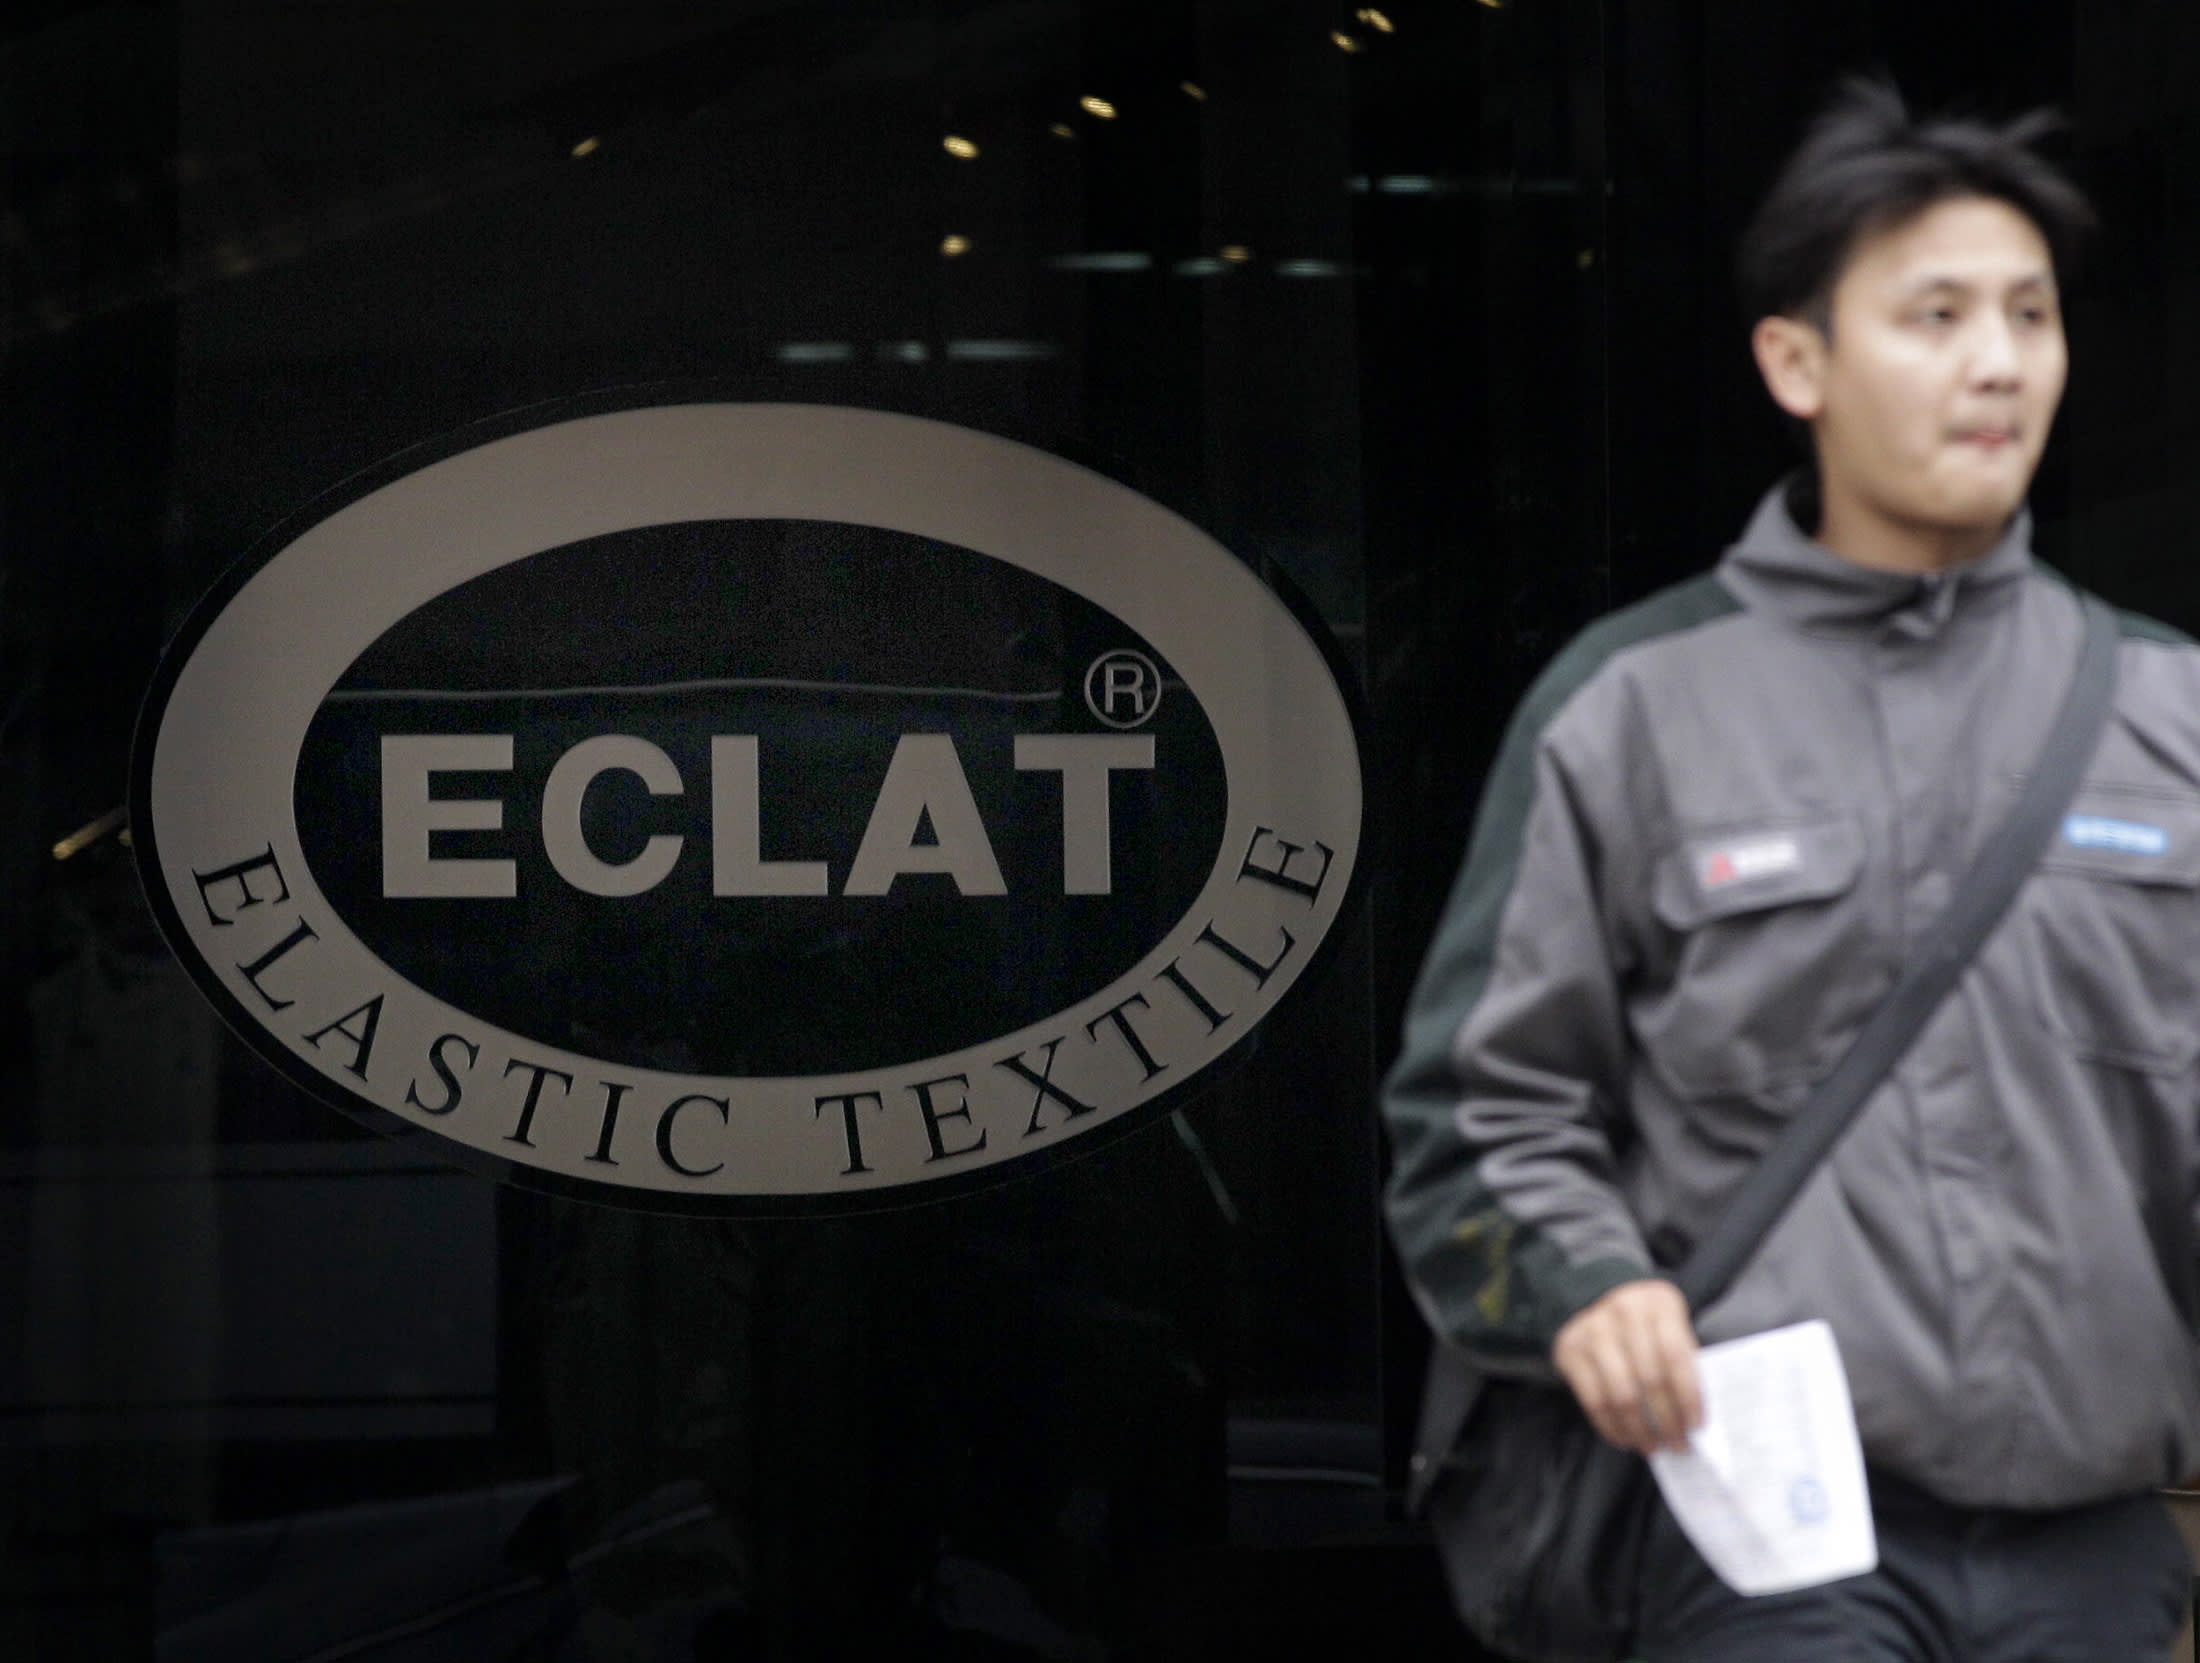 580a42dd26c97 Nike apparel supplier Eclat sees growth opportunity in trade spat ...